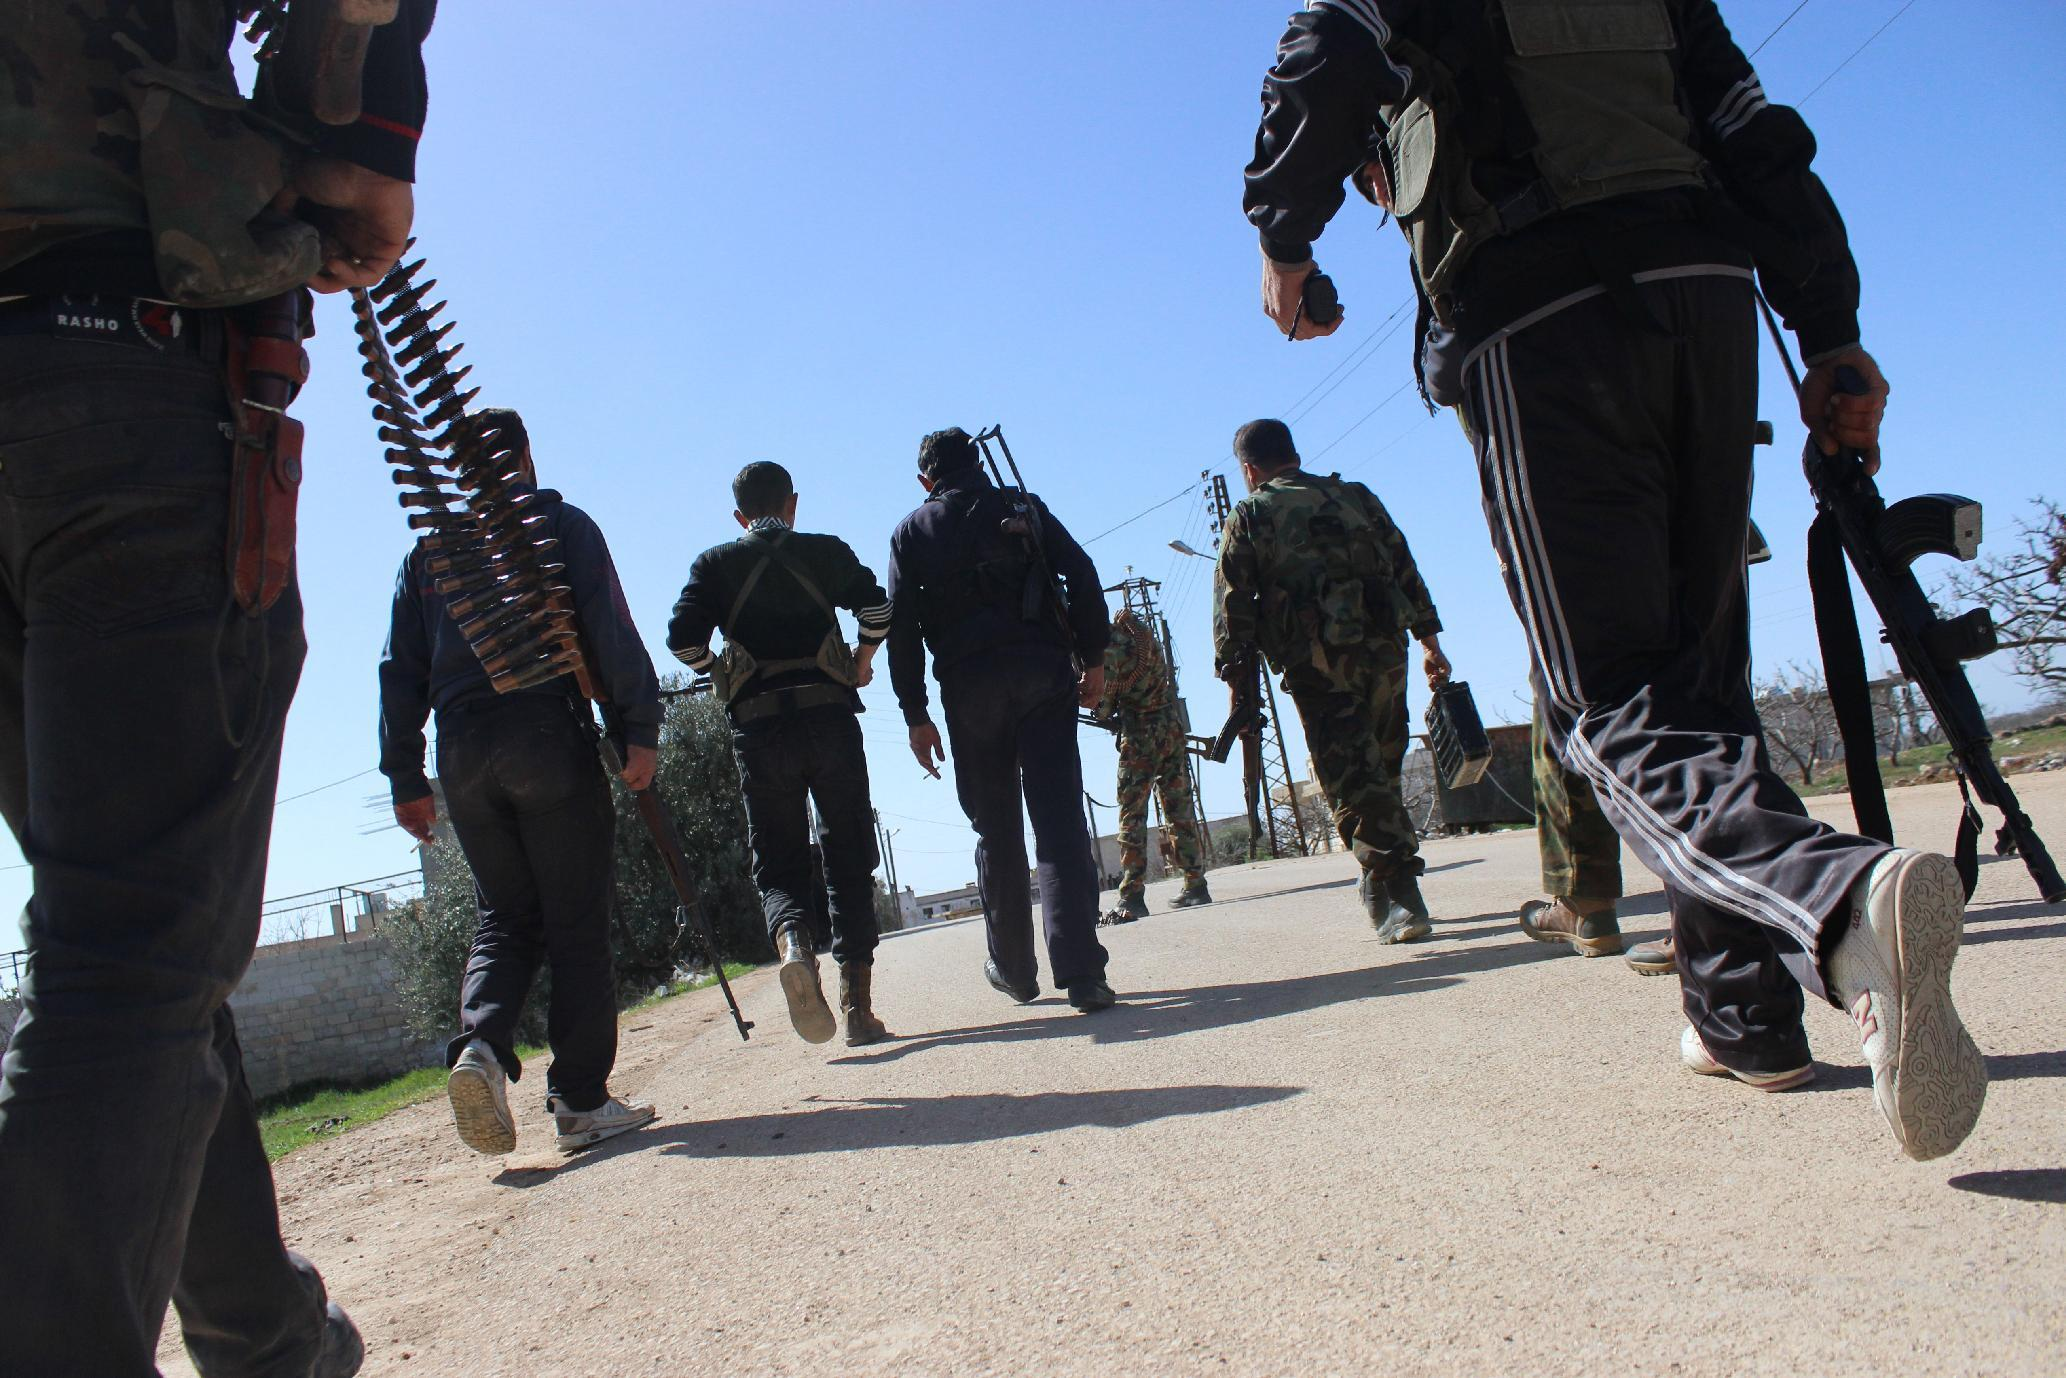 Rebel fighters make their way to the front-line in the Syrian village of Morek on March 7, 2014